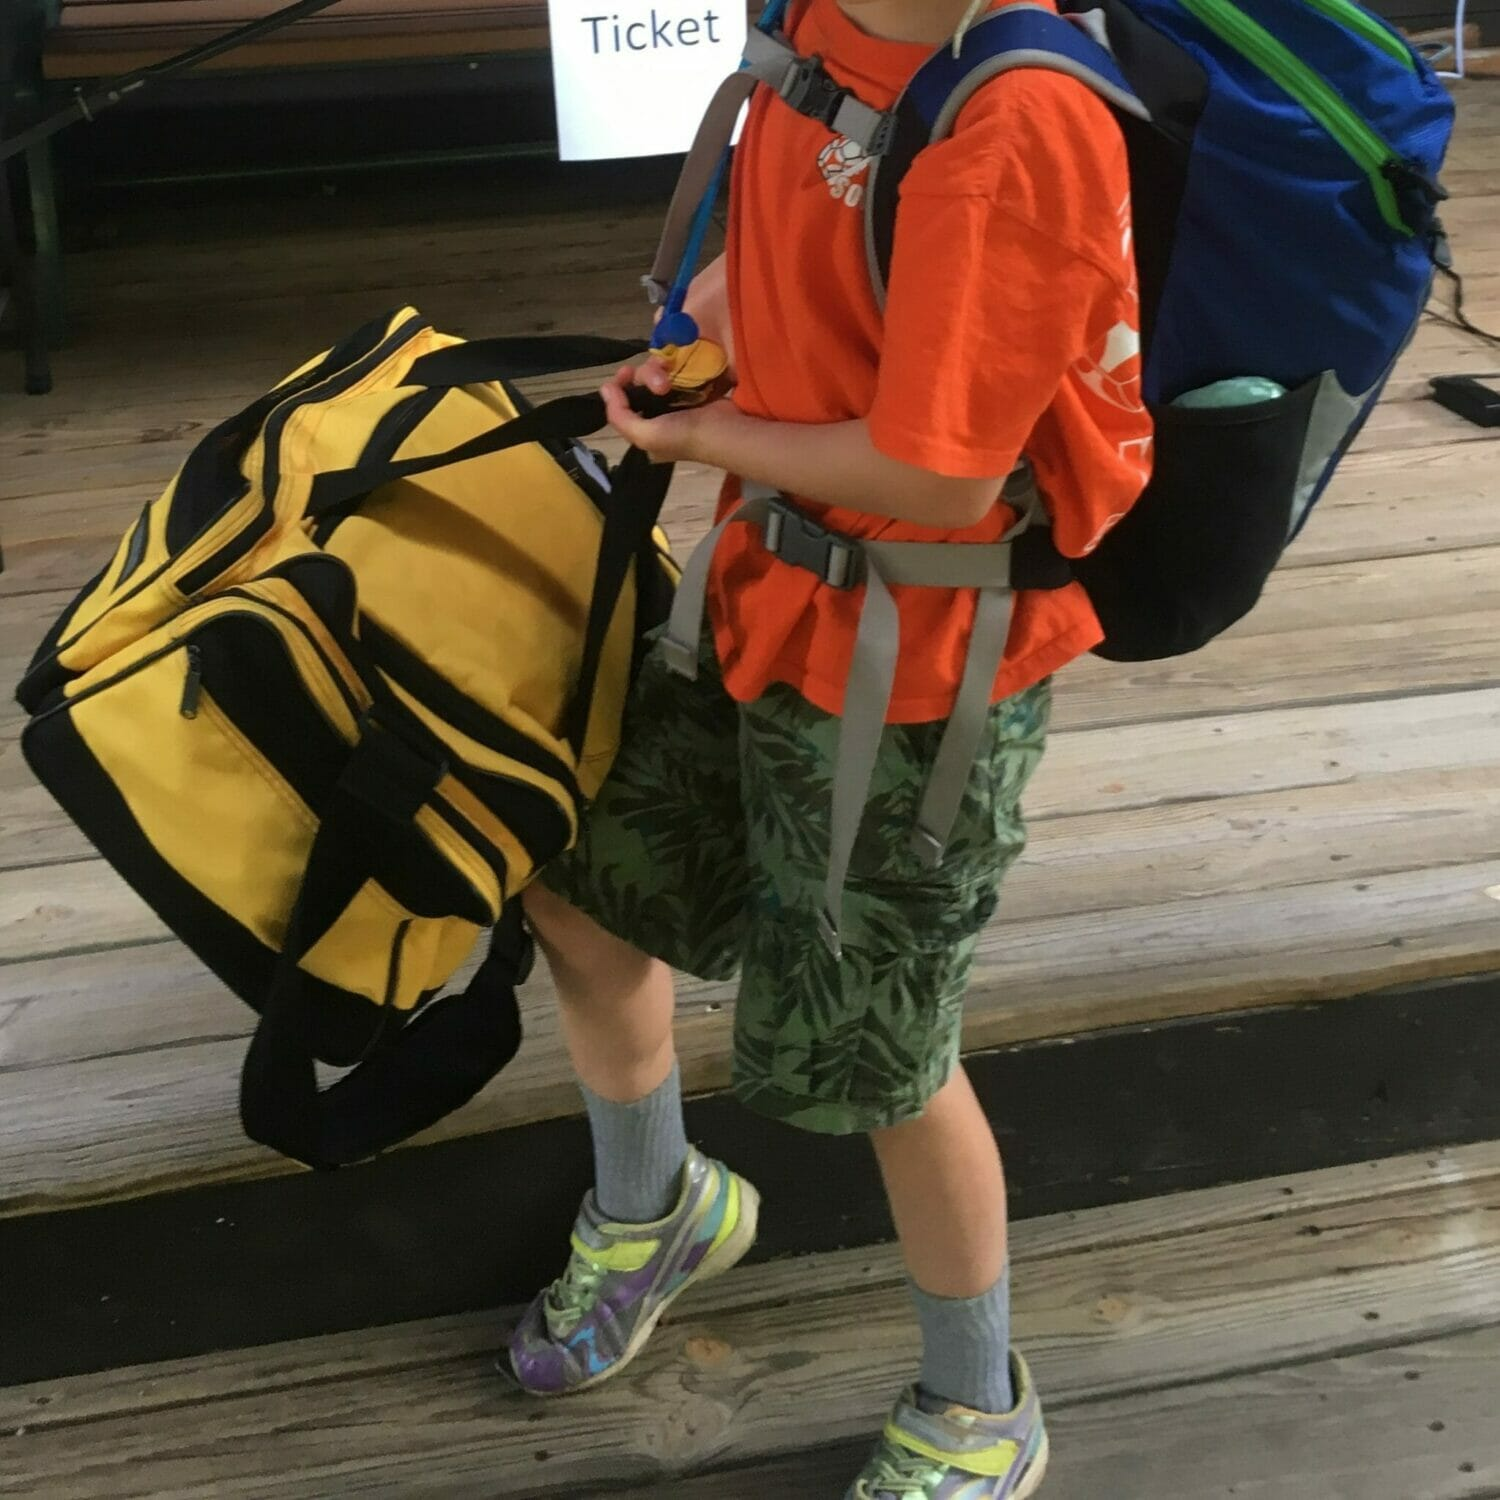 My Top 10 Family Camping Splurges, Part 2